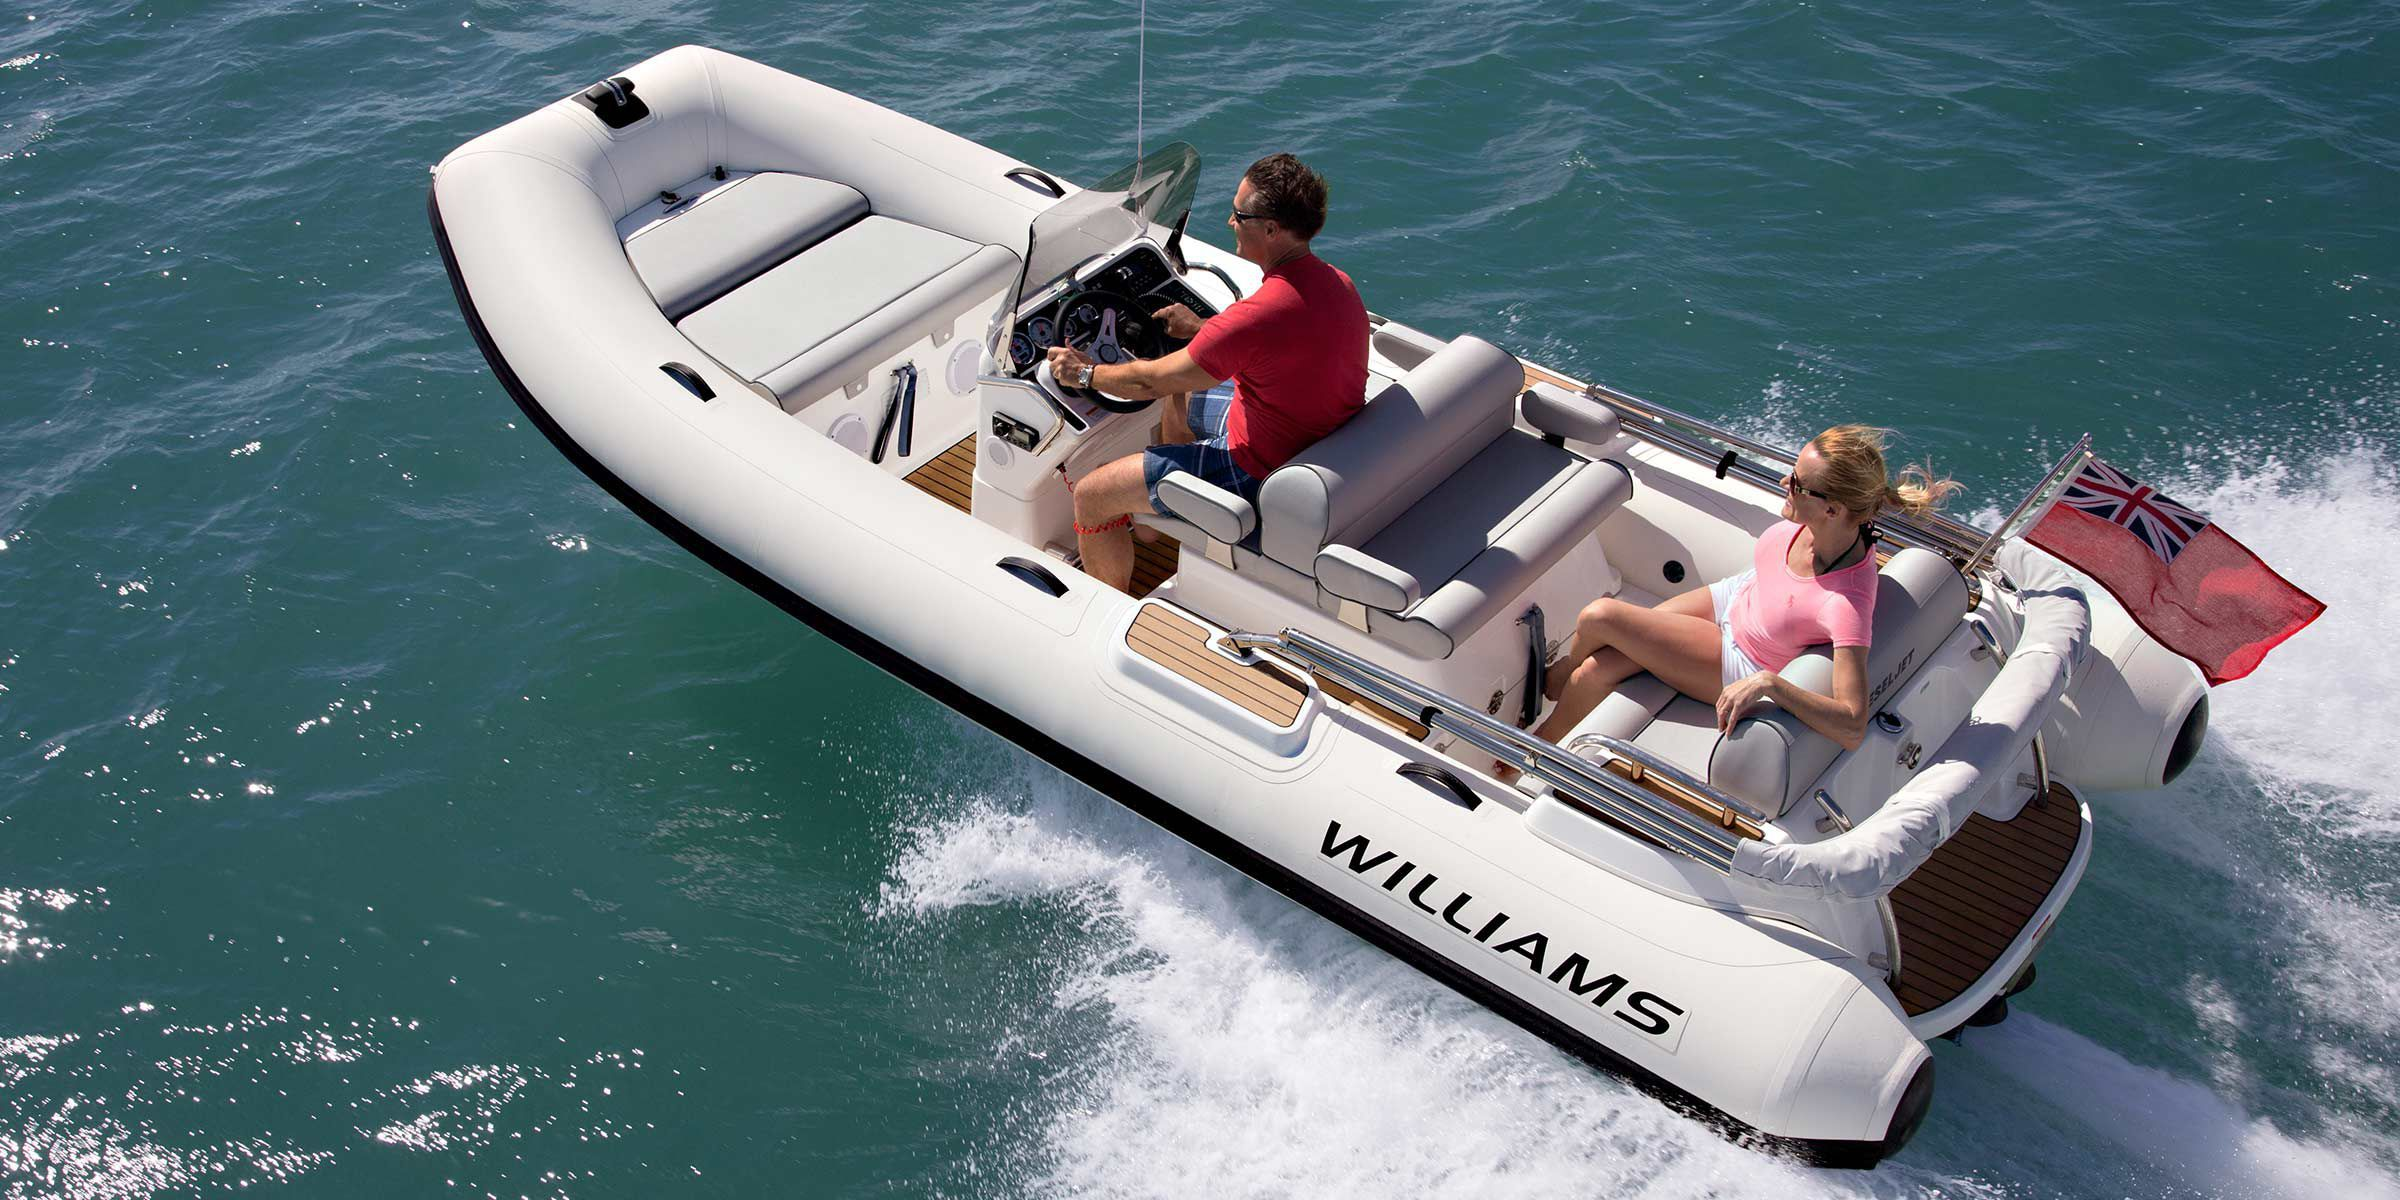 bateau pneumatique williams